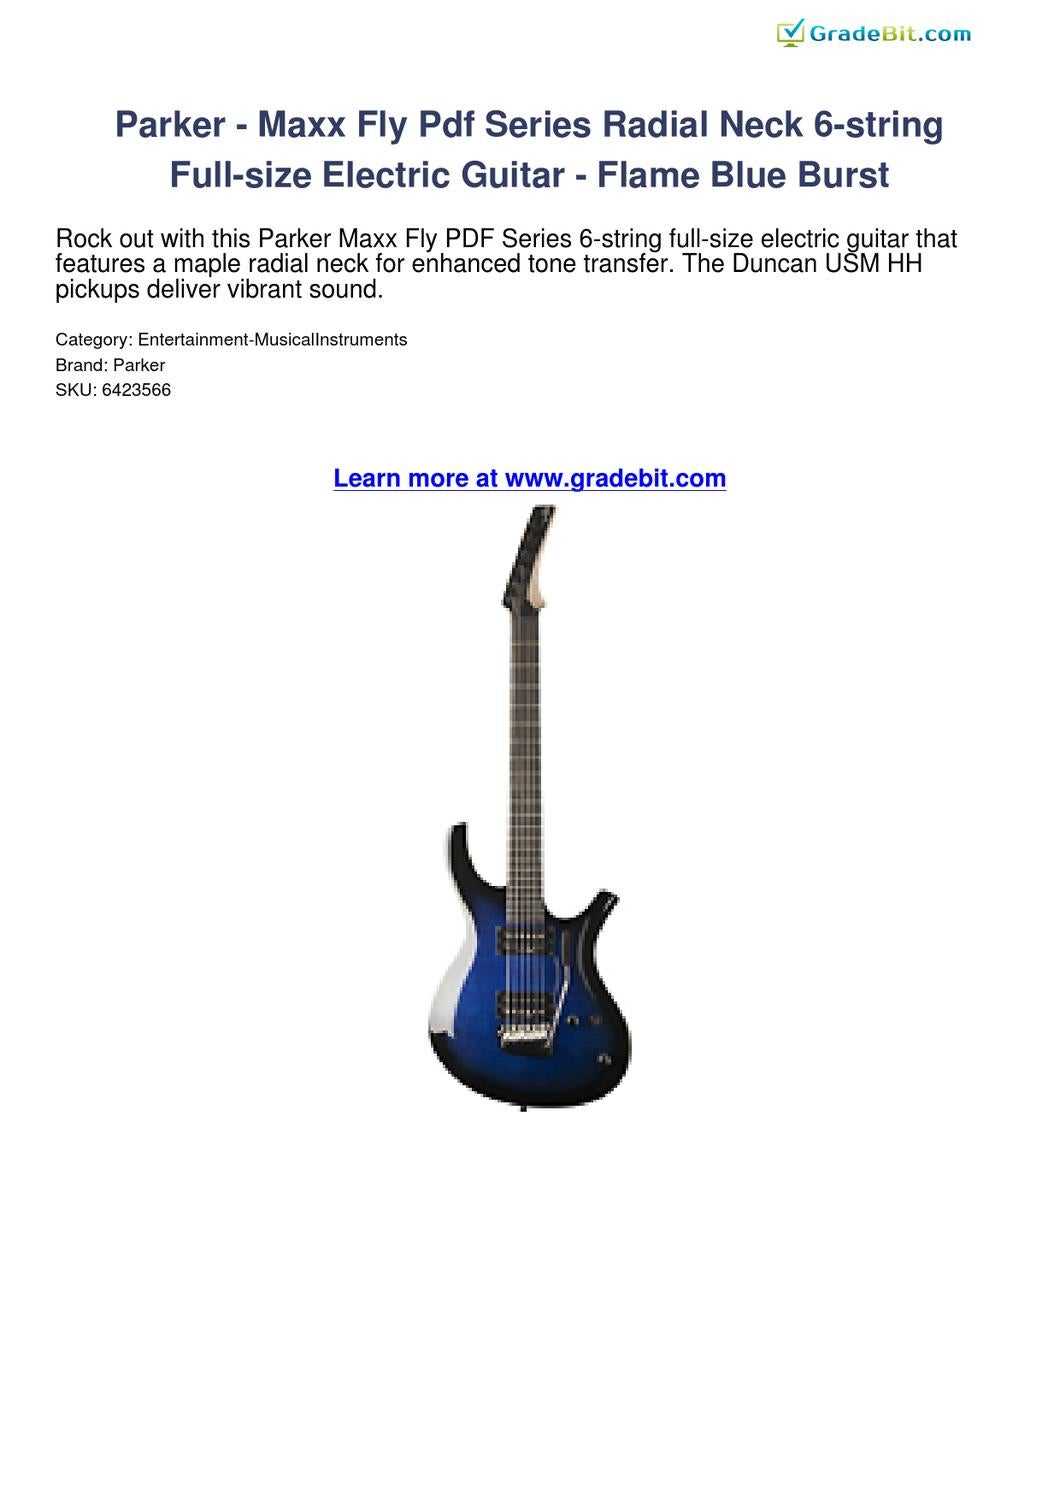 Parker Maxx Fly Pdf Series Radial Neck 6 String Full Size Electric